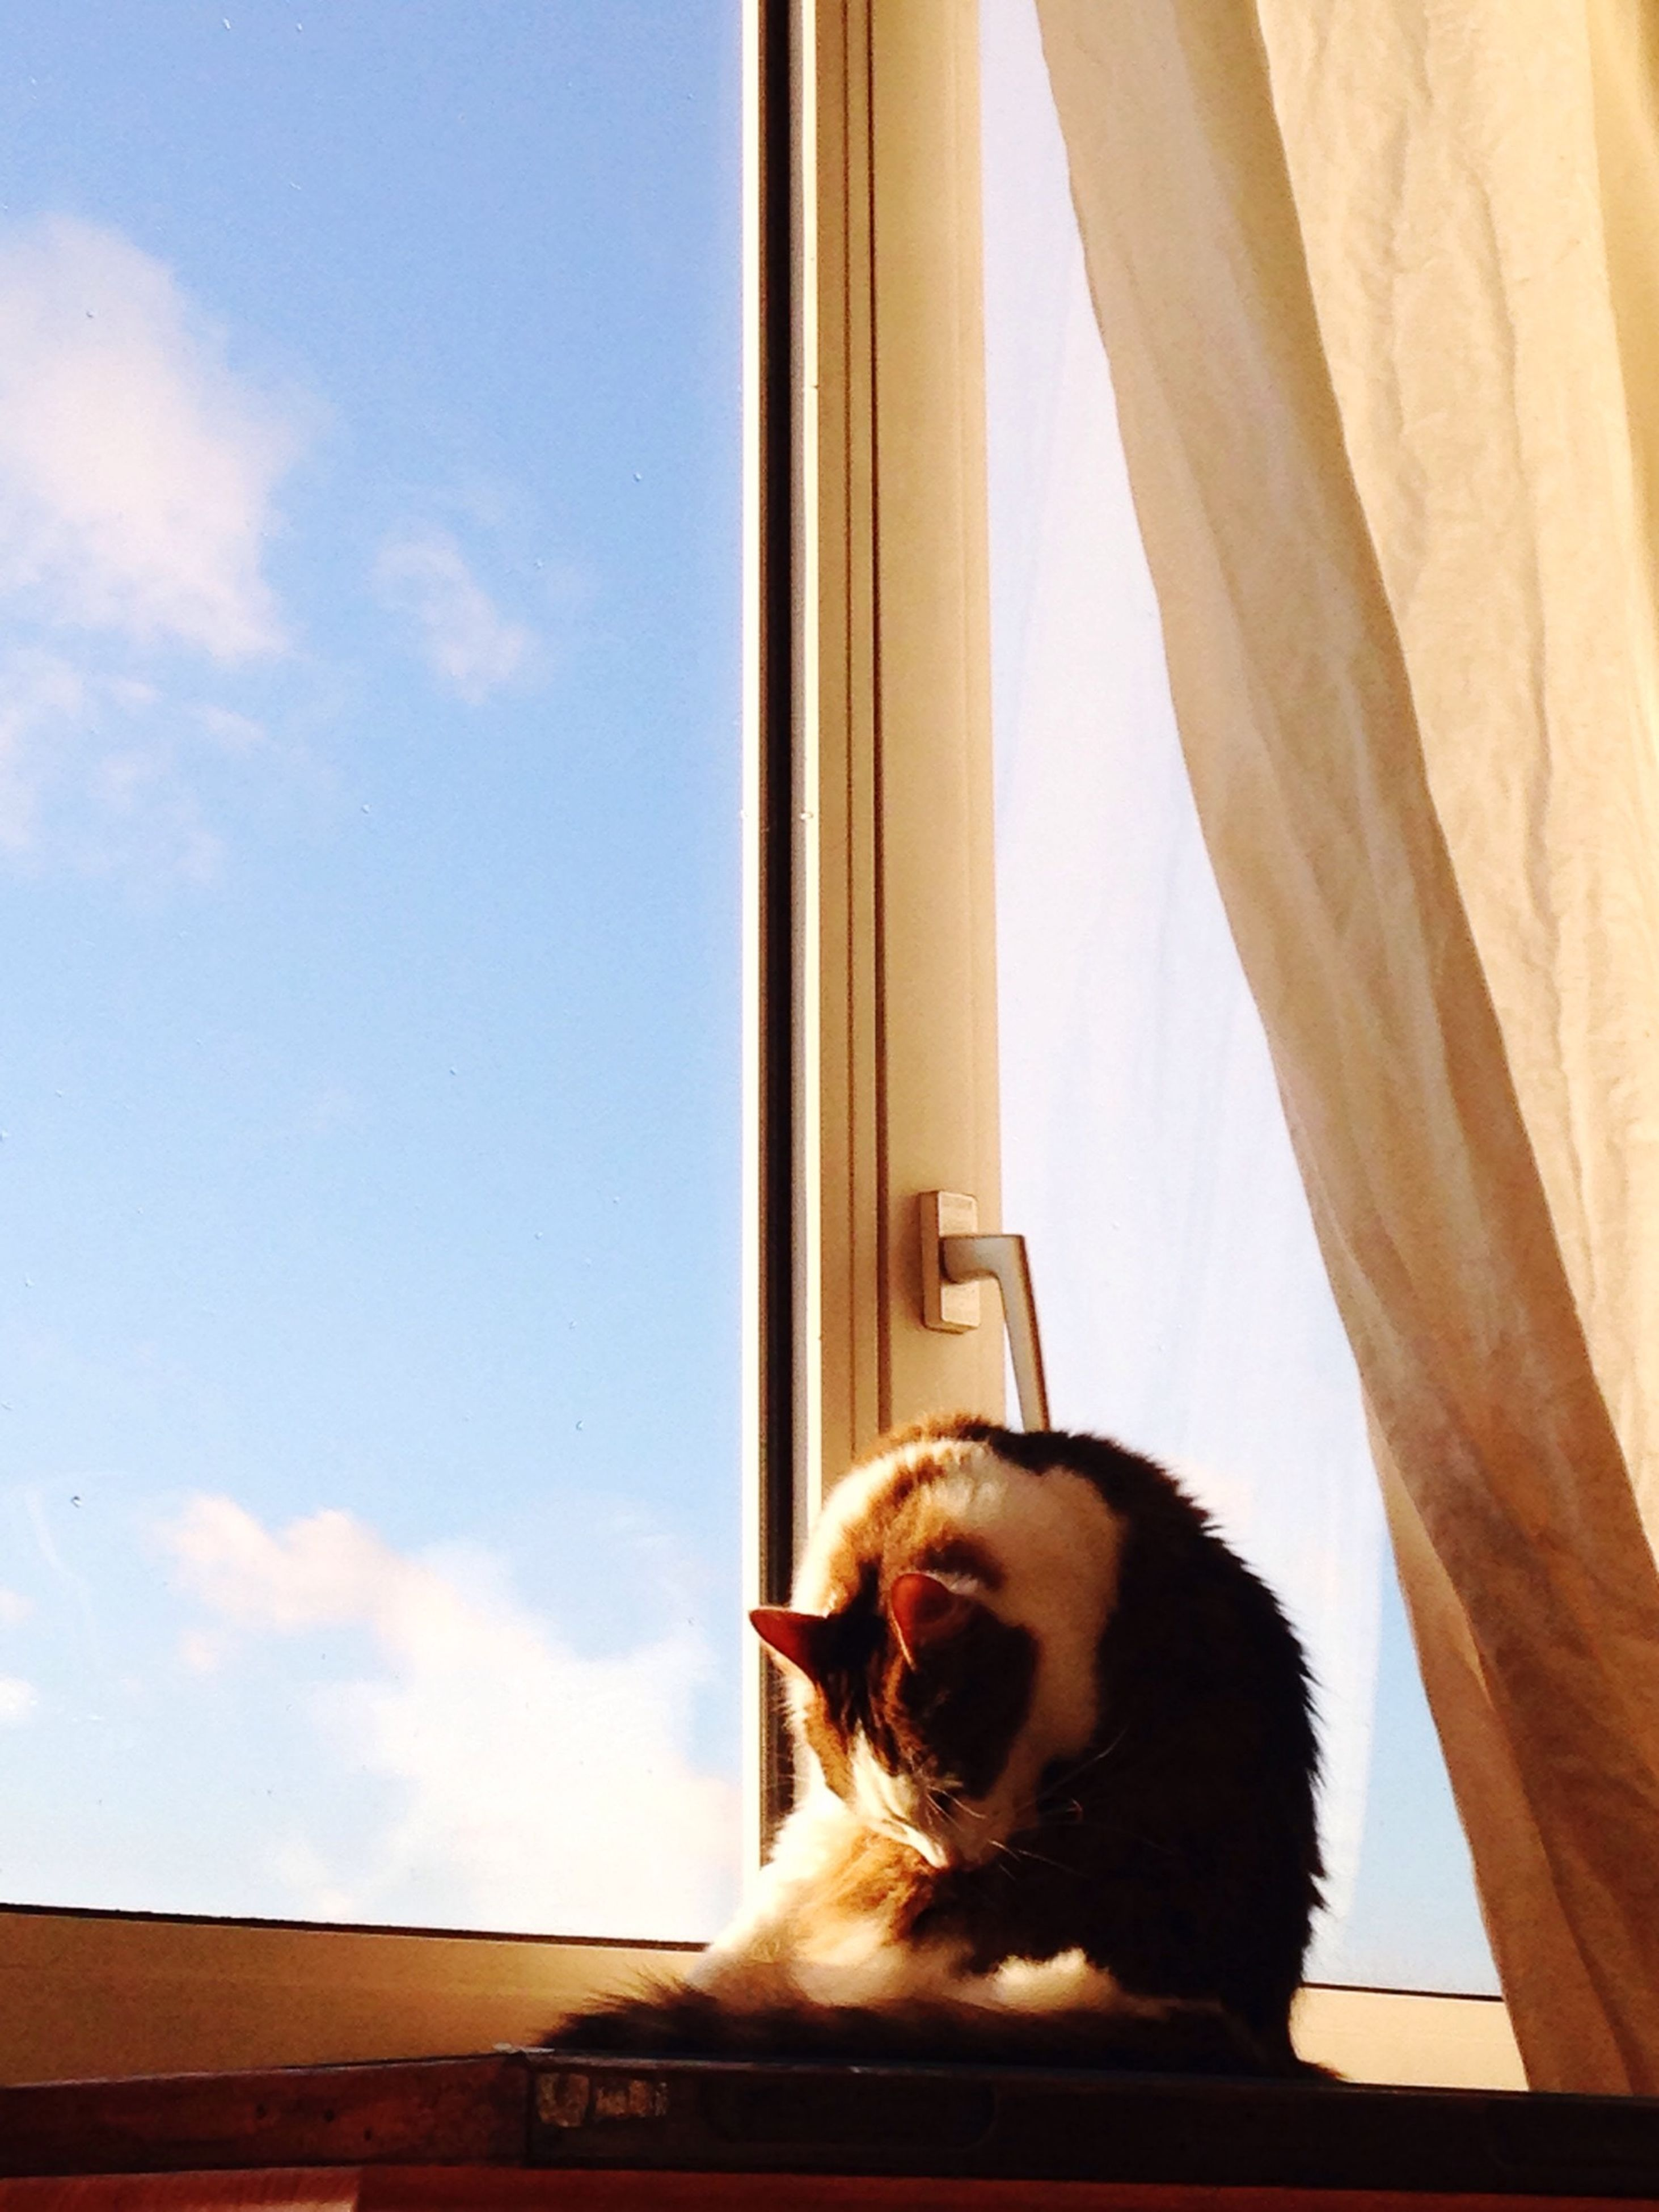 indoors, pets, window, domestic animals, one animal, mammal, animal themes, home interior, one person, domestic cat, sitting, cat, looking through window, glass - material, sky, dog, looking away, low angle view, window sill, side view